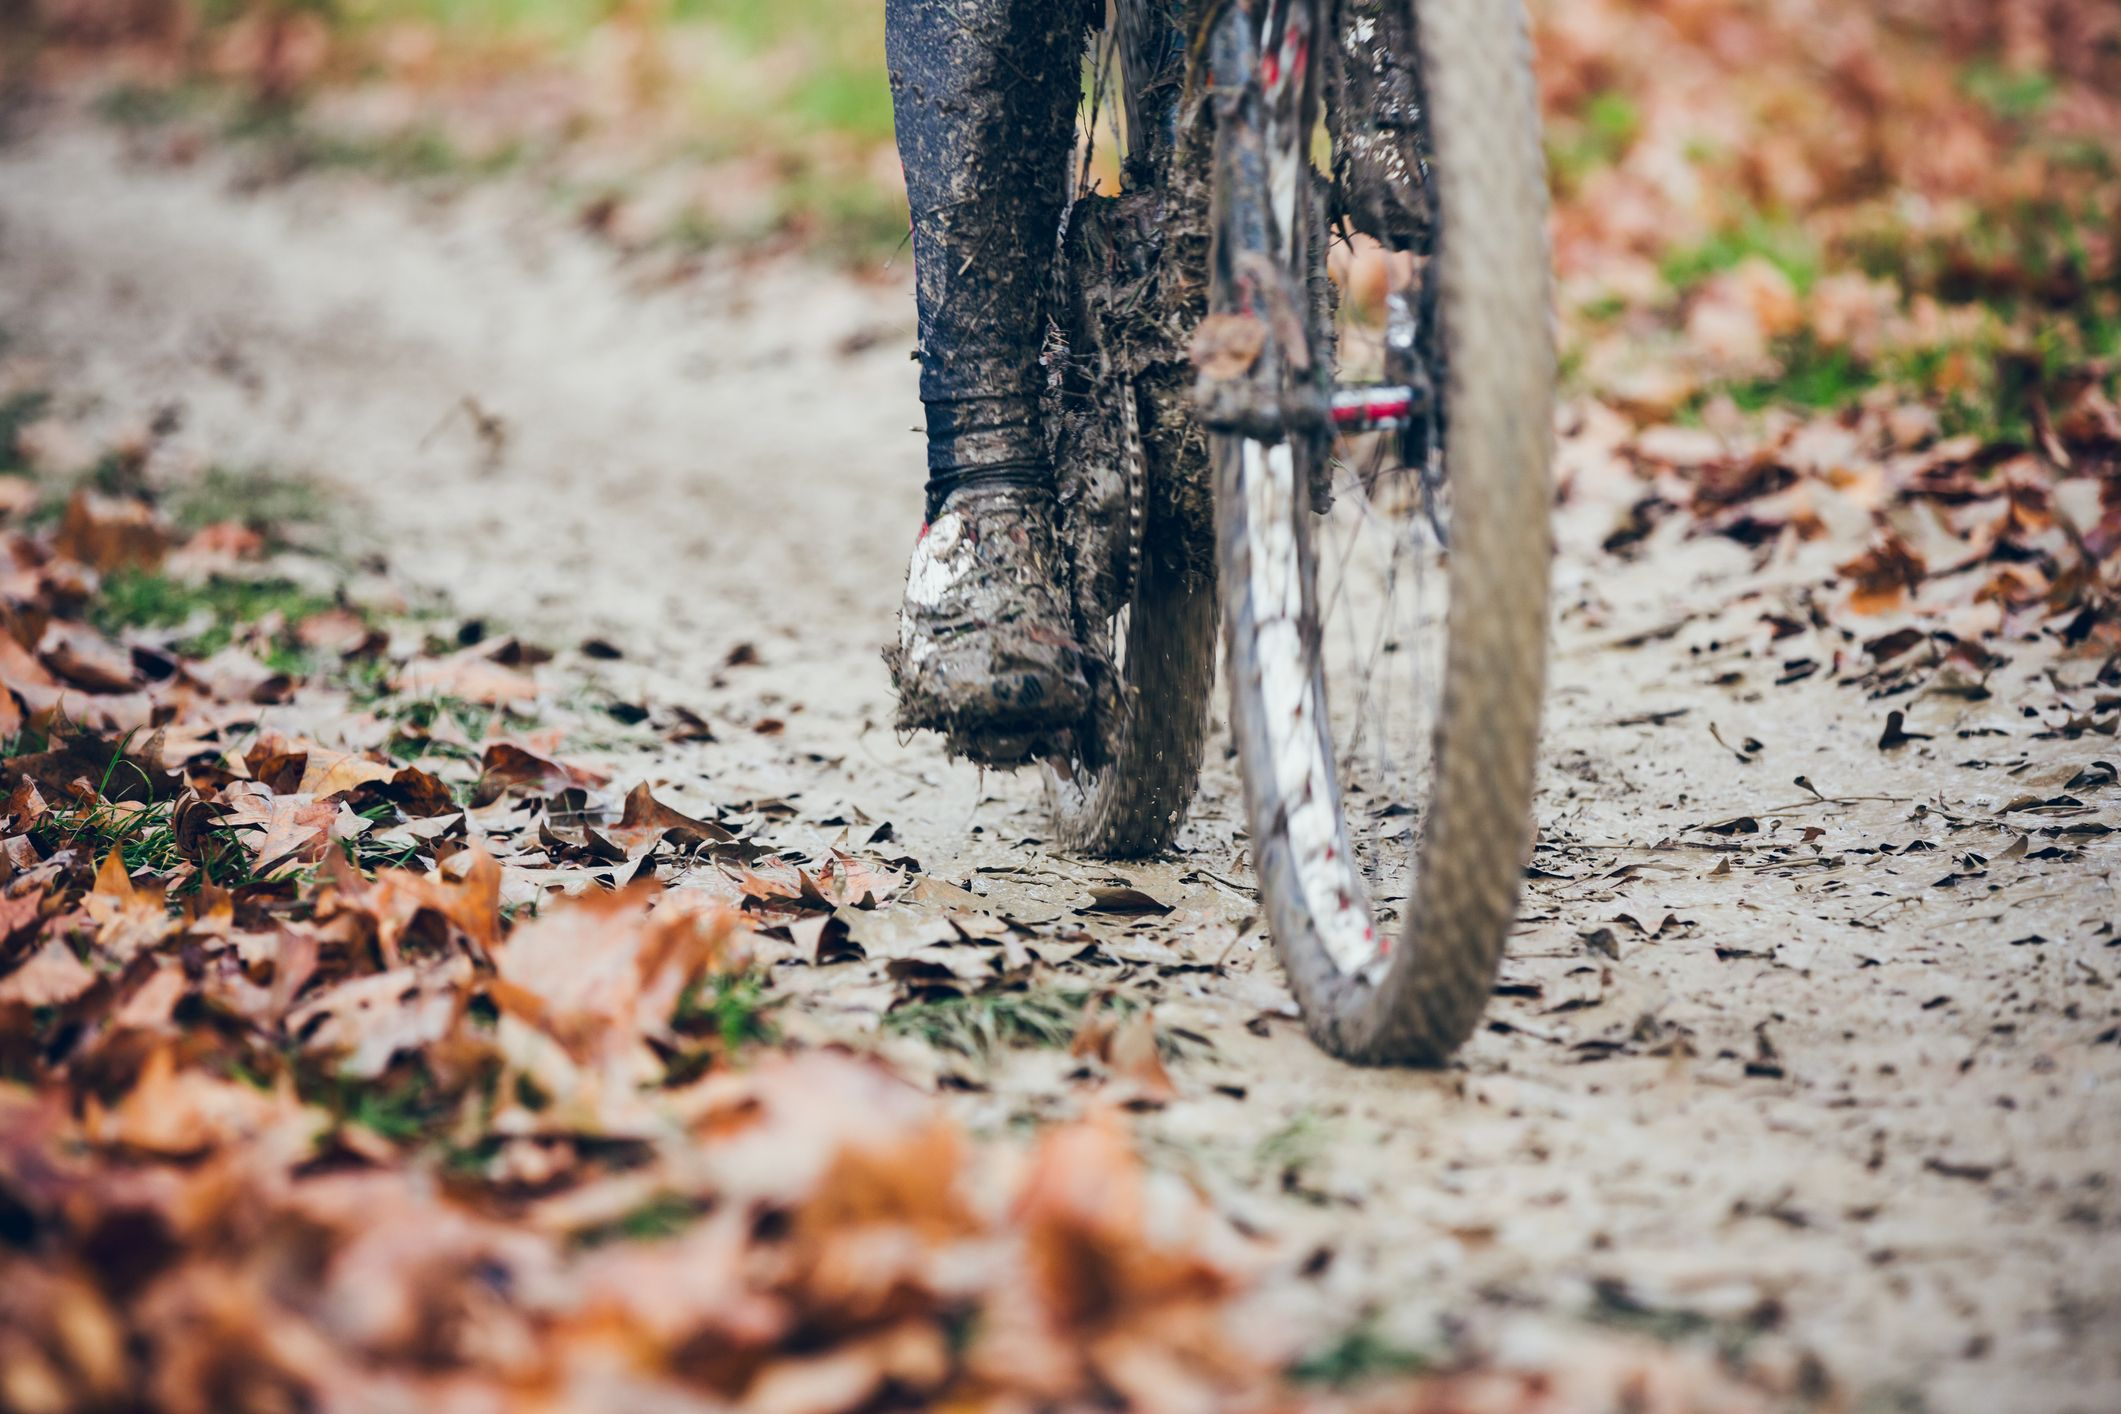 A Step-by-Step Guide on How to Clean a Bike